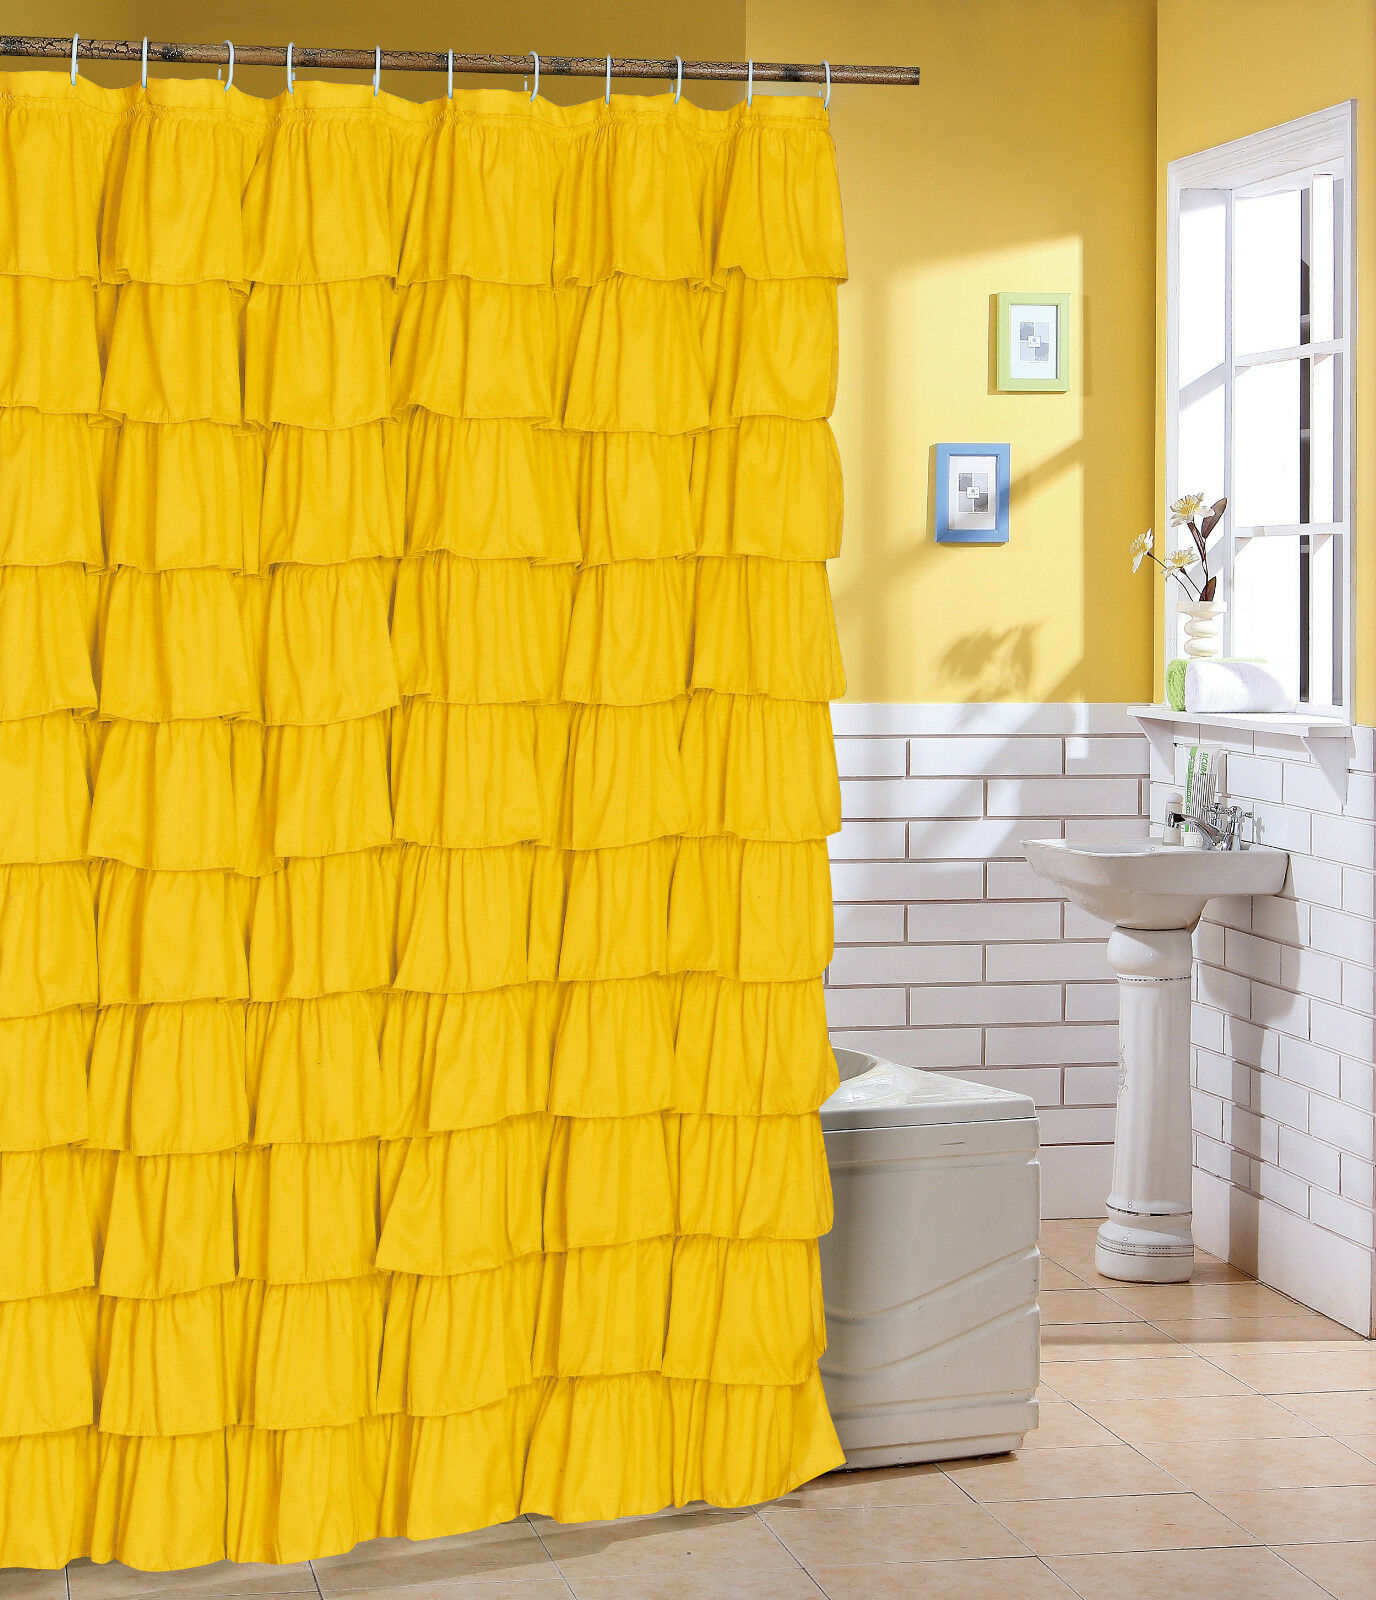 Yellow Fabric Shower Curtain Spring Fabric Ruffle Shower Curtain Color Yellow